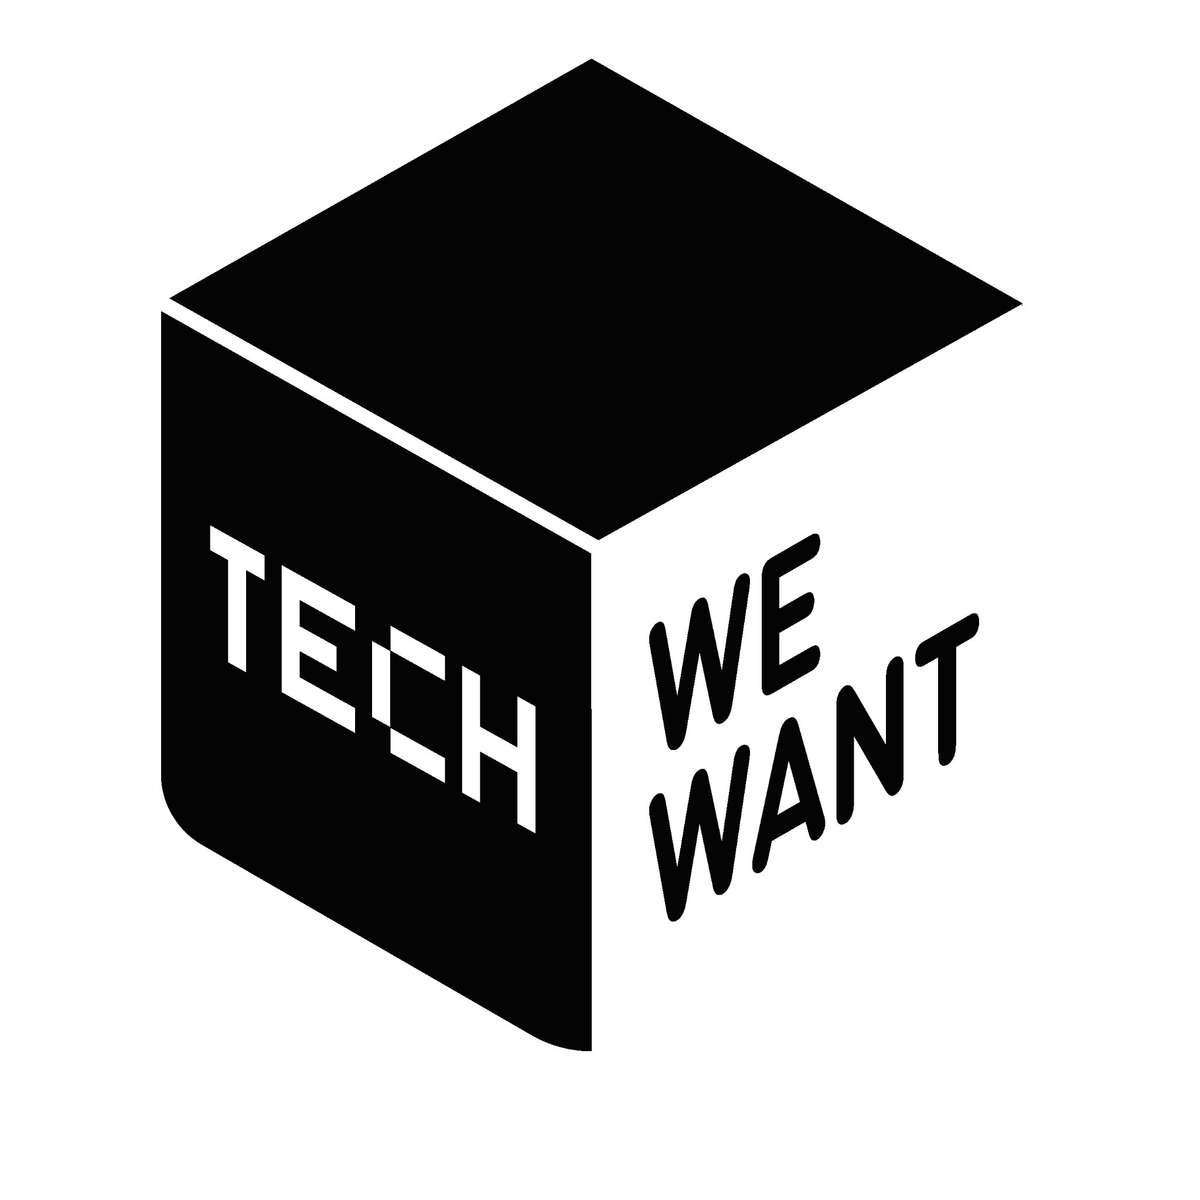 tech we want logo